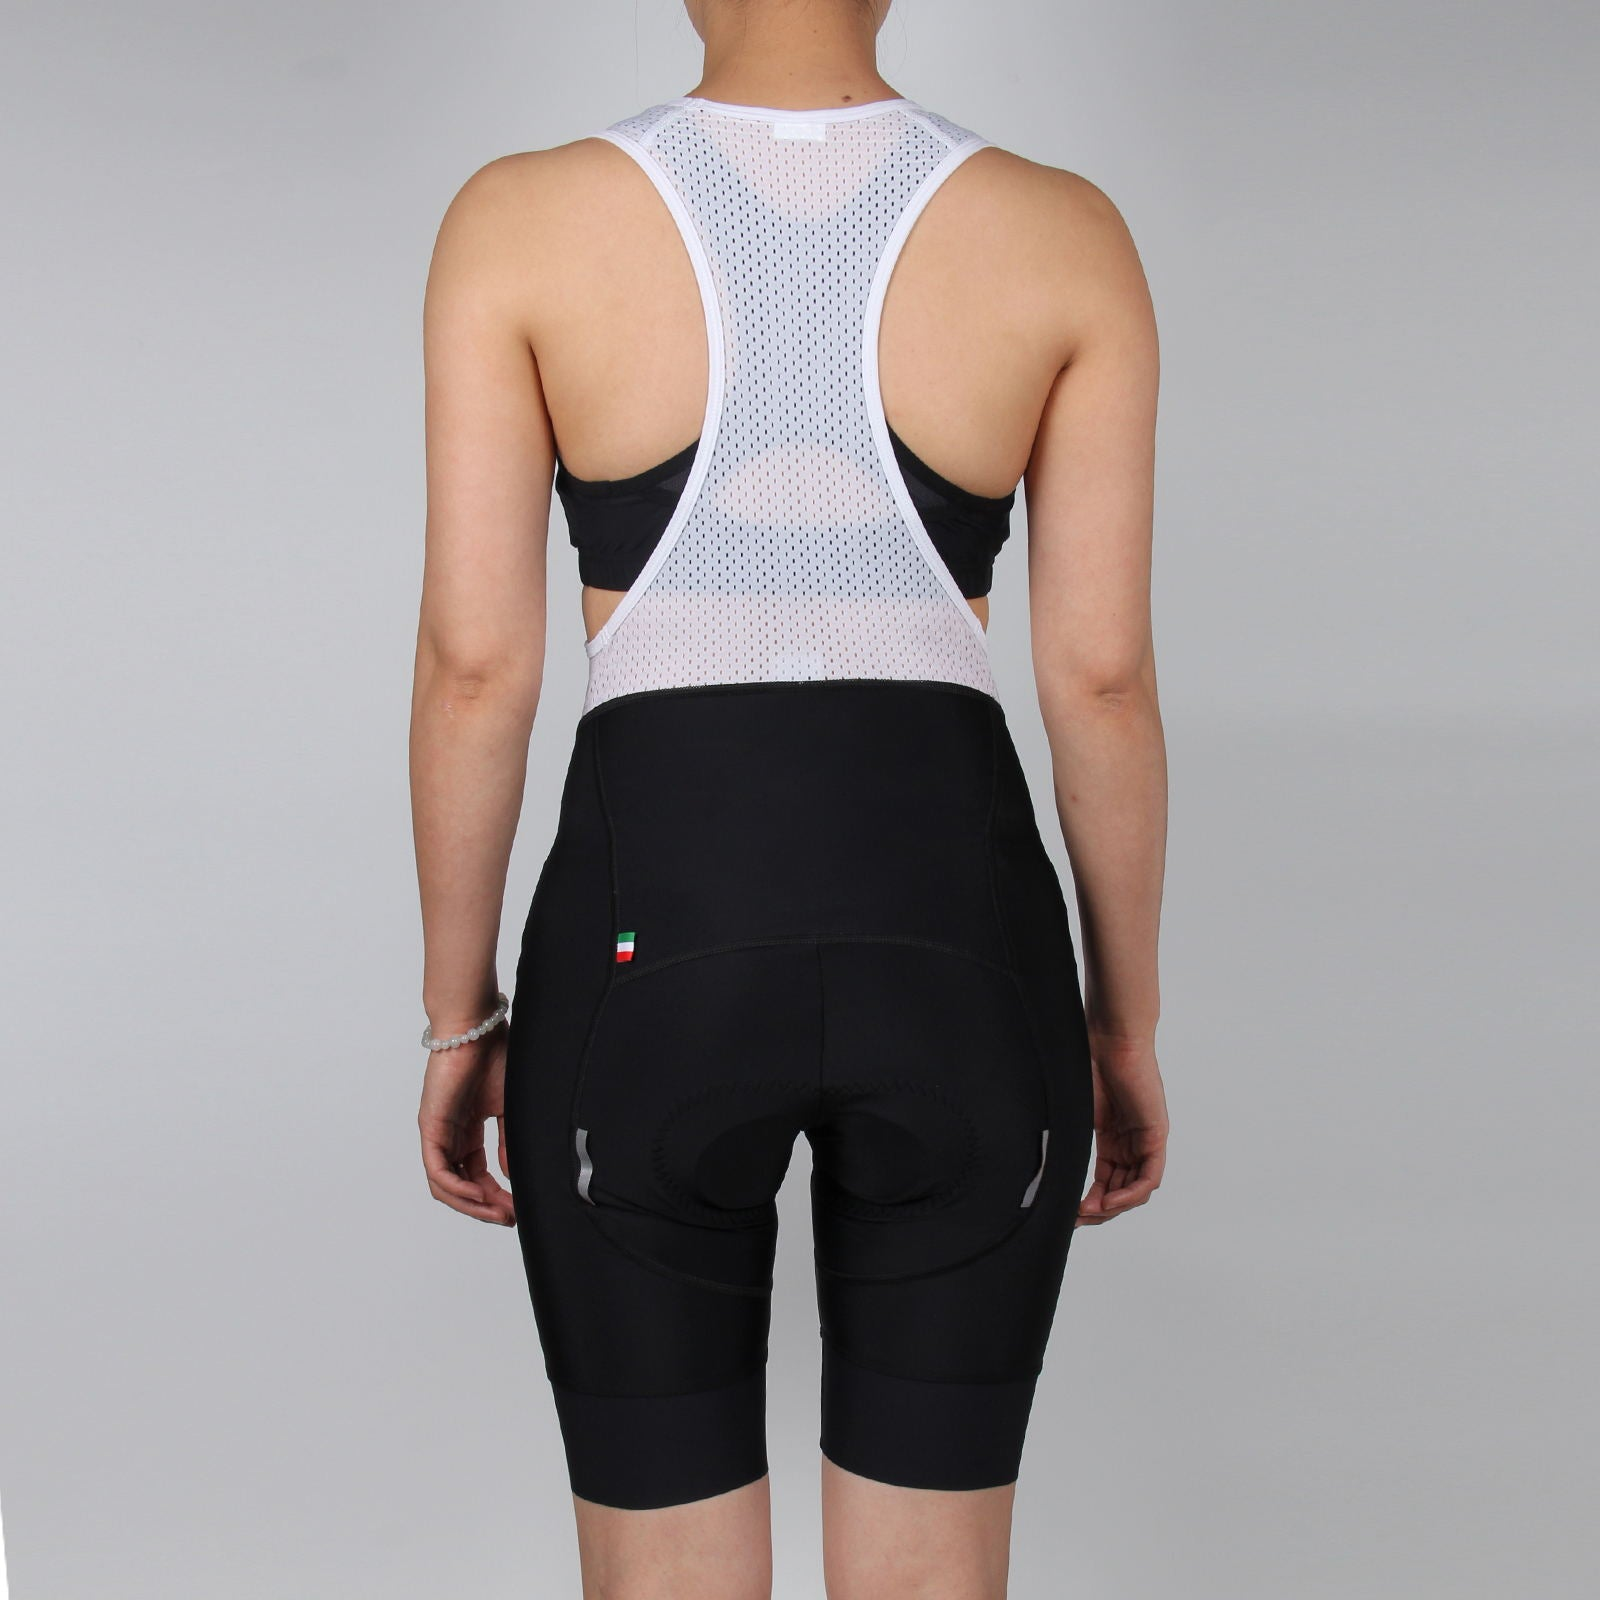 WOMEN Black Cycling Bib Shorts, with GLOSSY LOGO